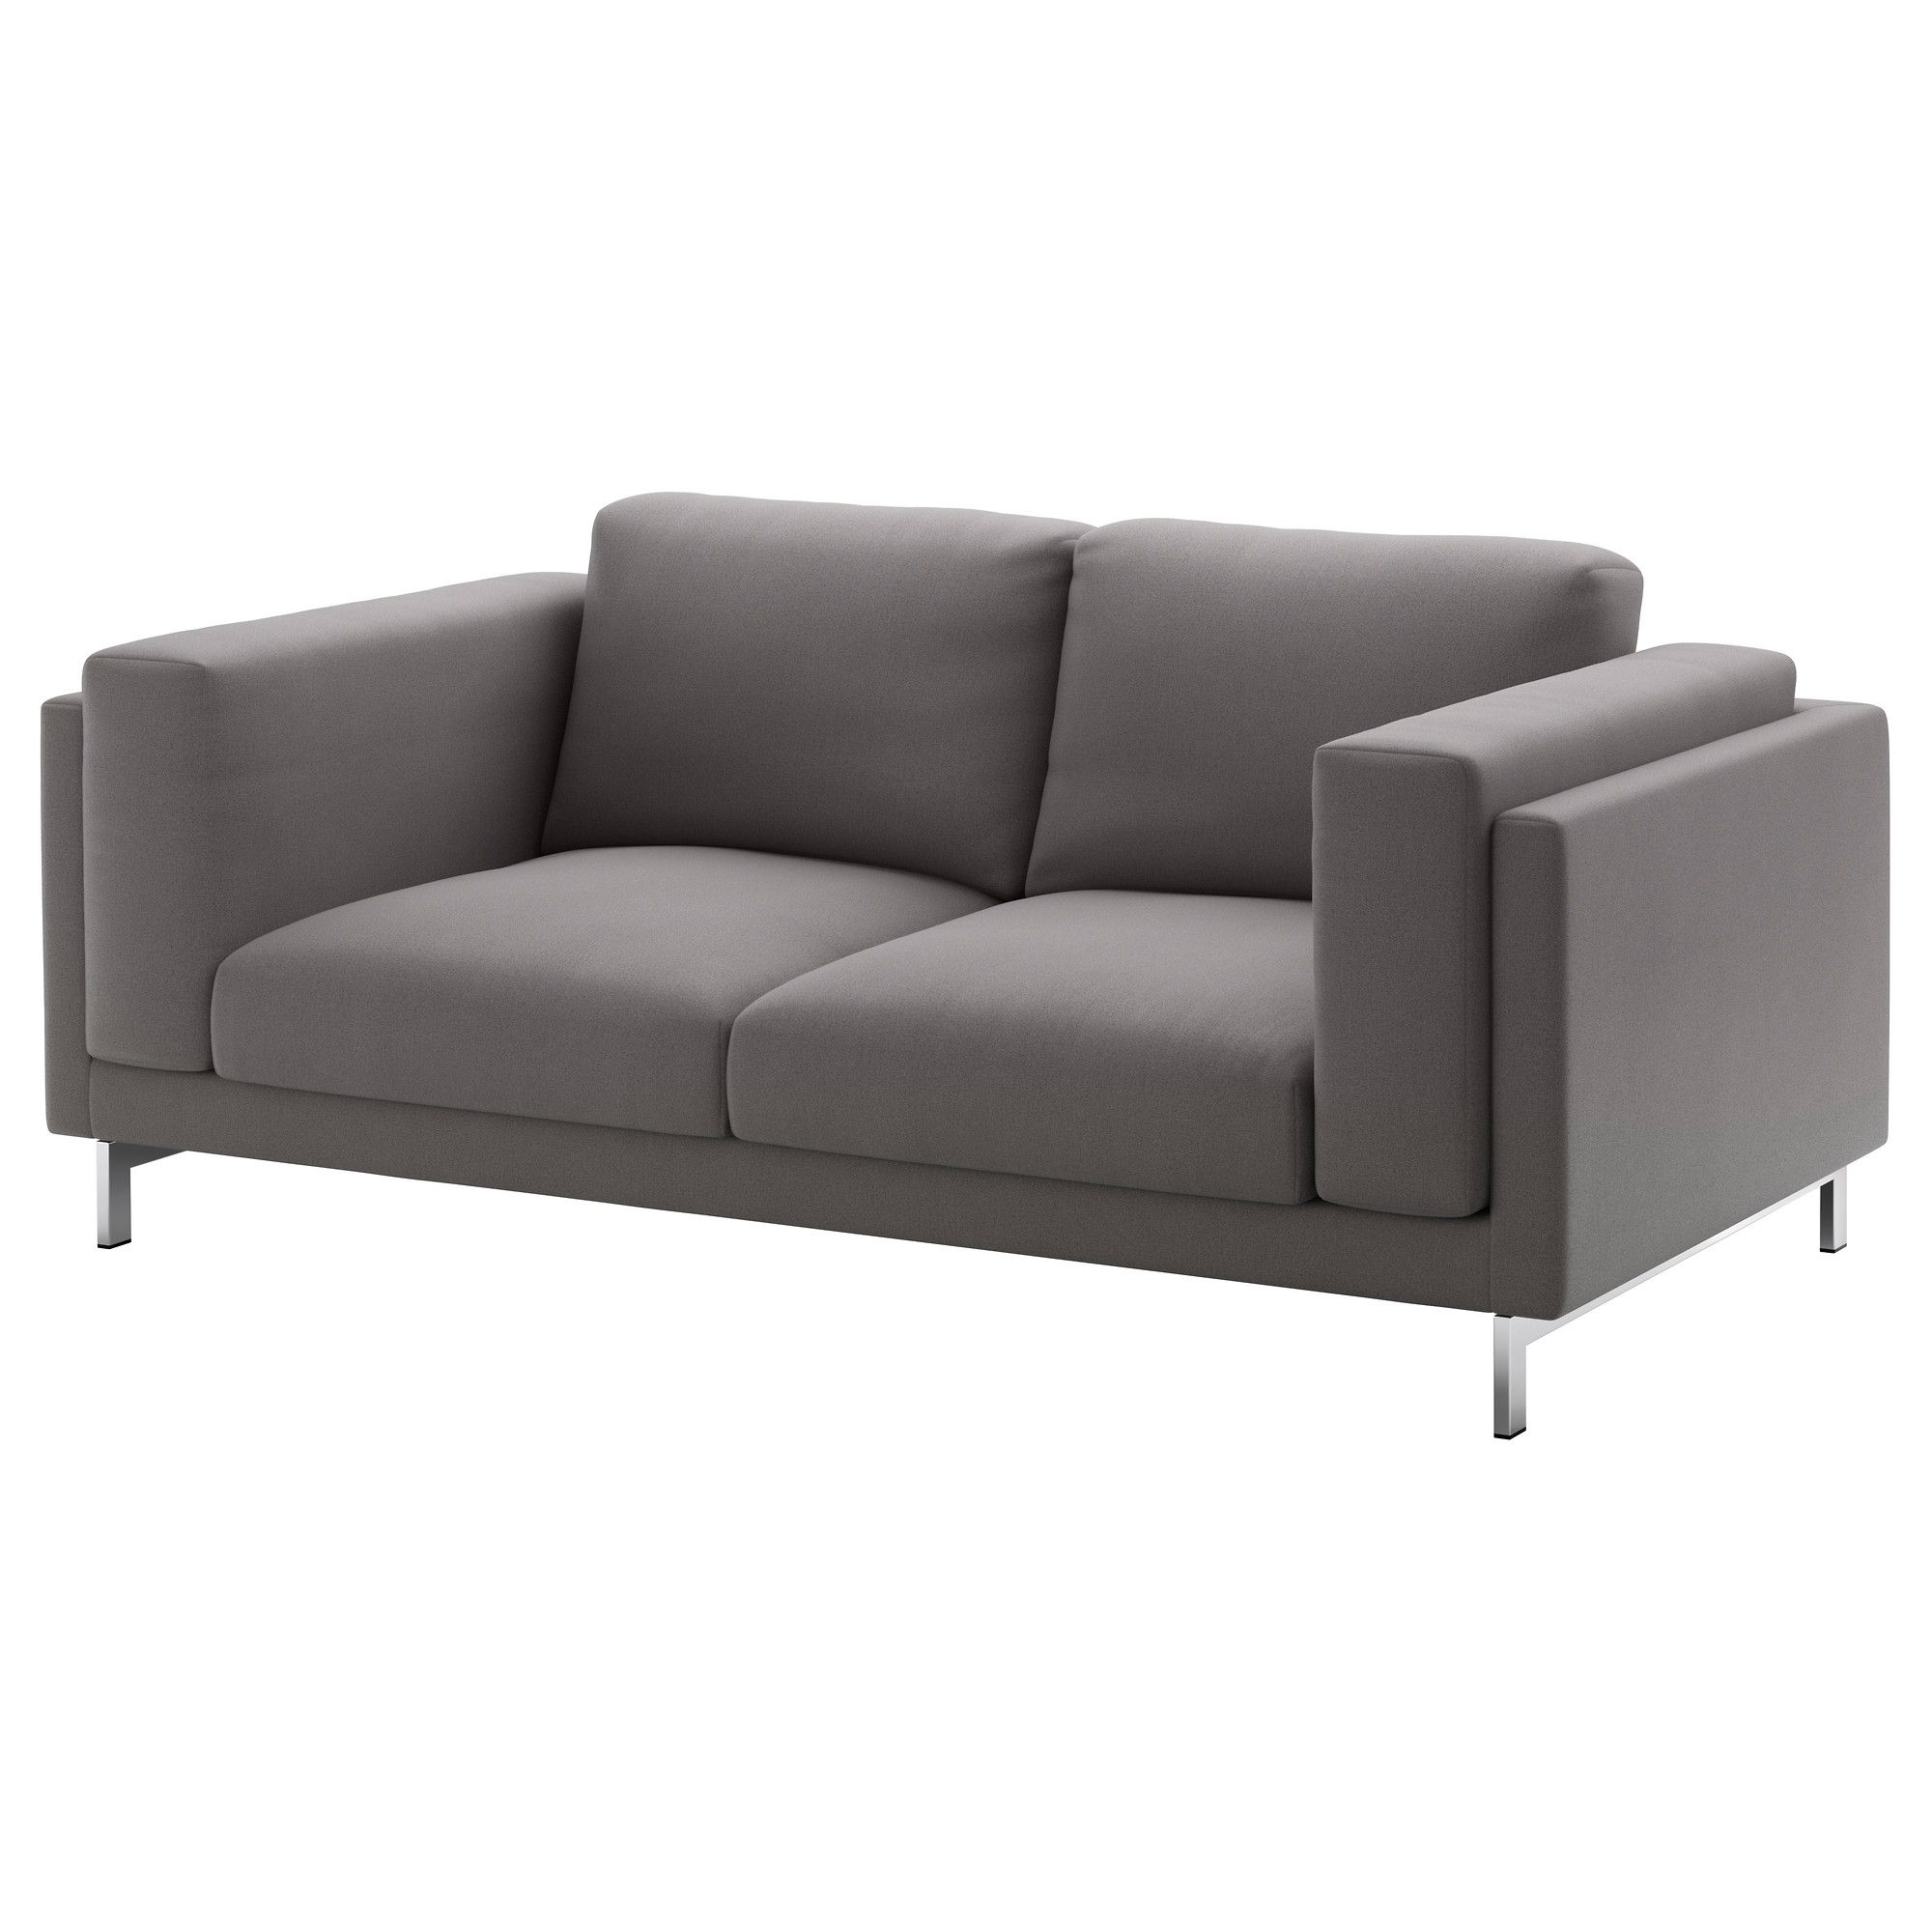 Ikea Sofa Nockeby Test Sofa Option 2 Ikea Nockeby Loveseat Risane Gray Chrome